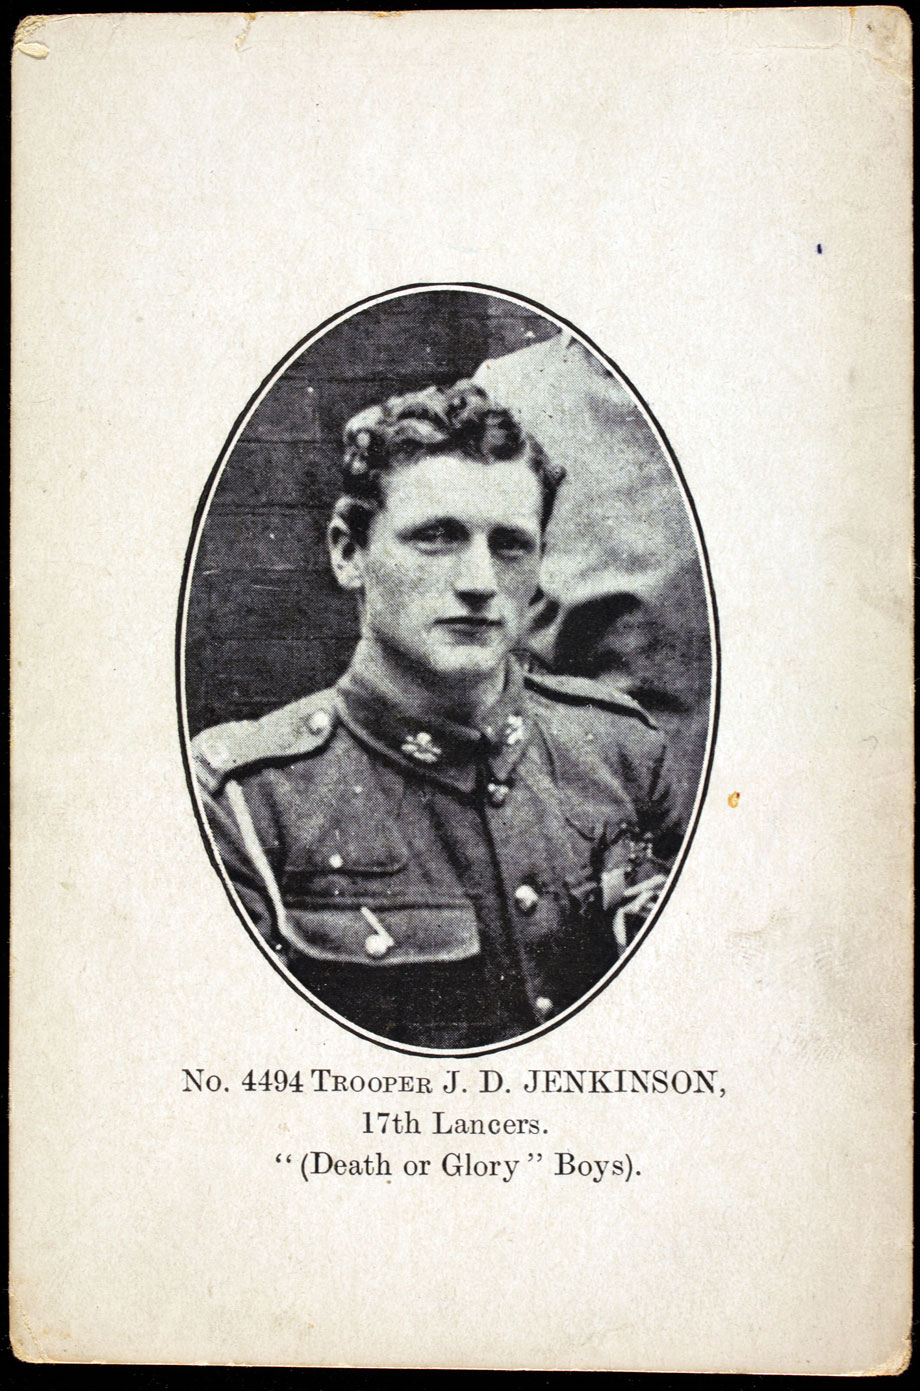 Jack Jenkinson in 1917 - No. 4494 Trooper J. D. Jenkinson, 17th Lancers